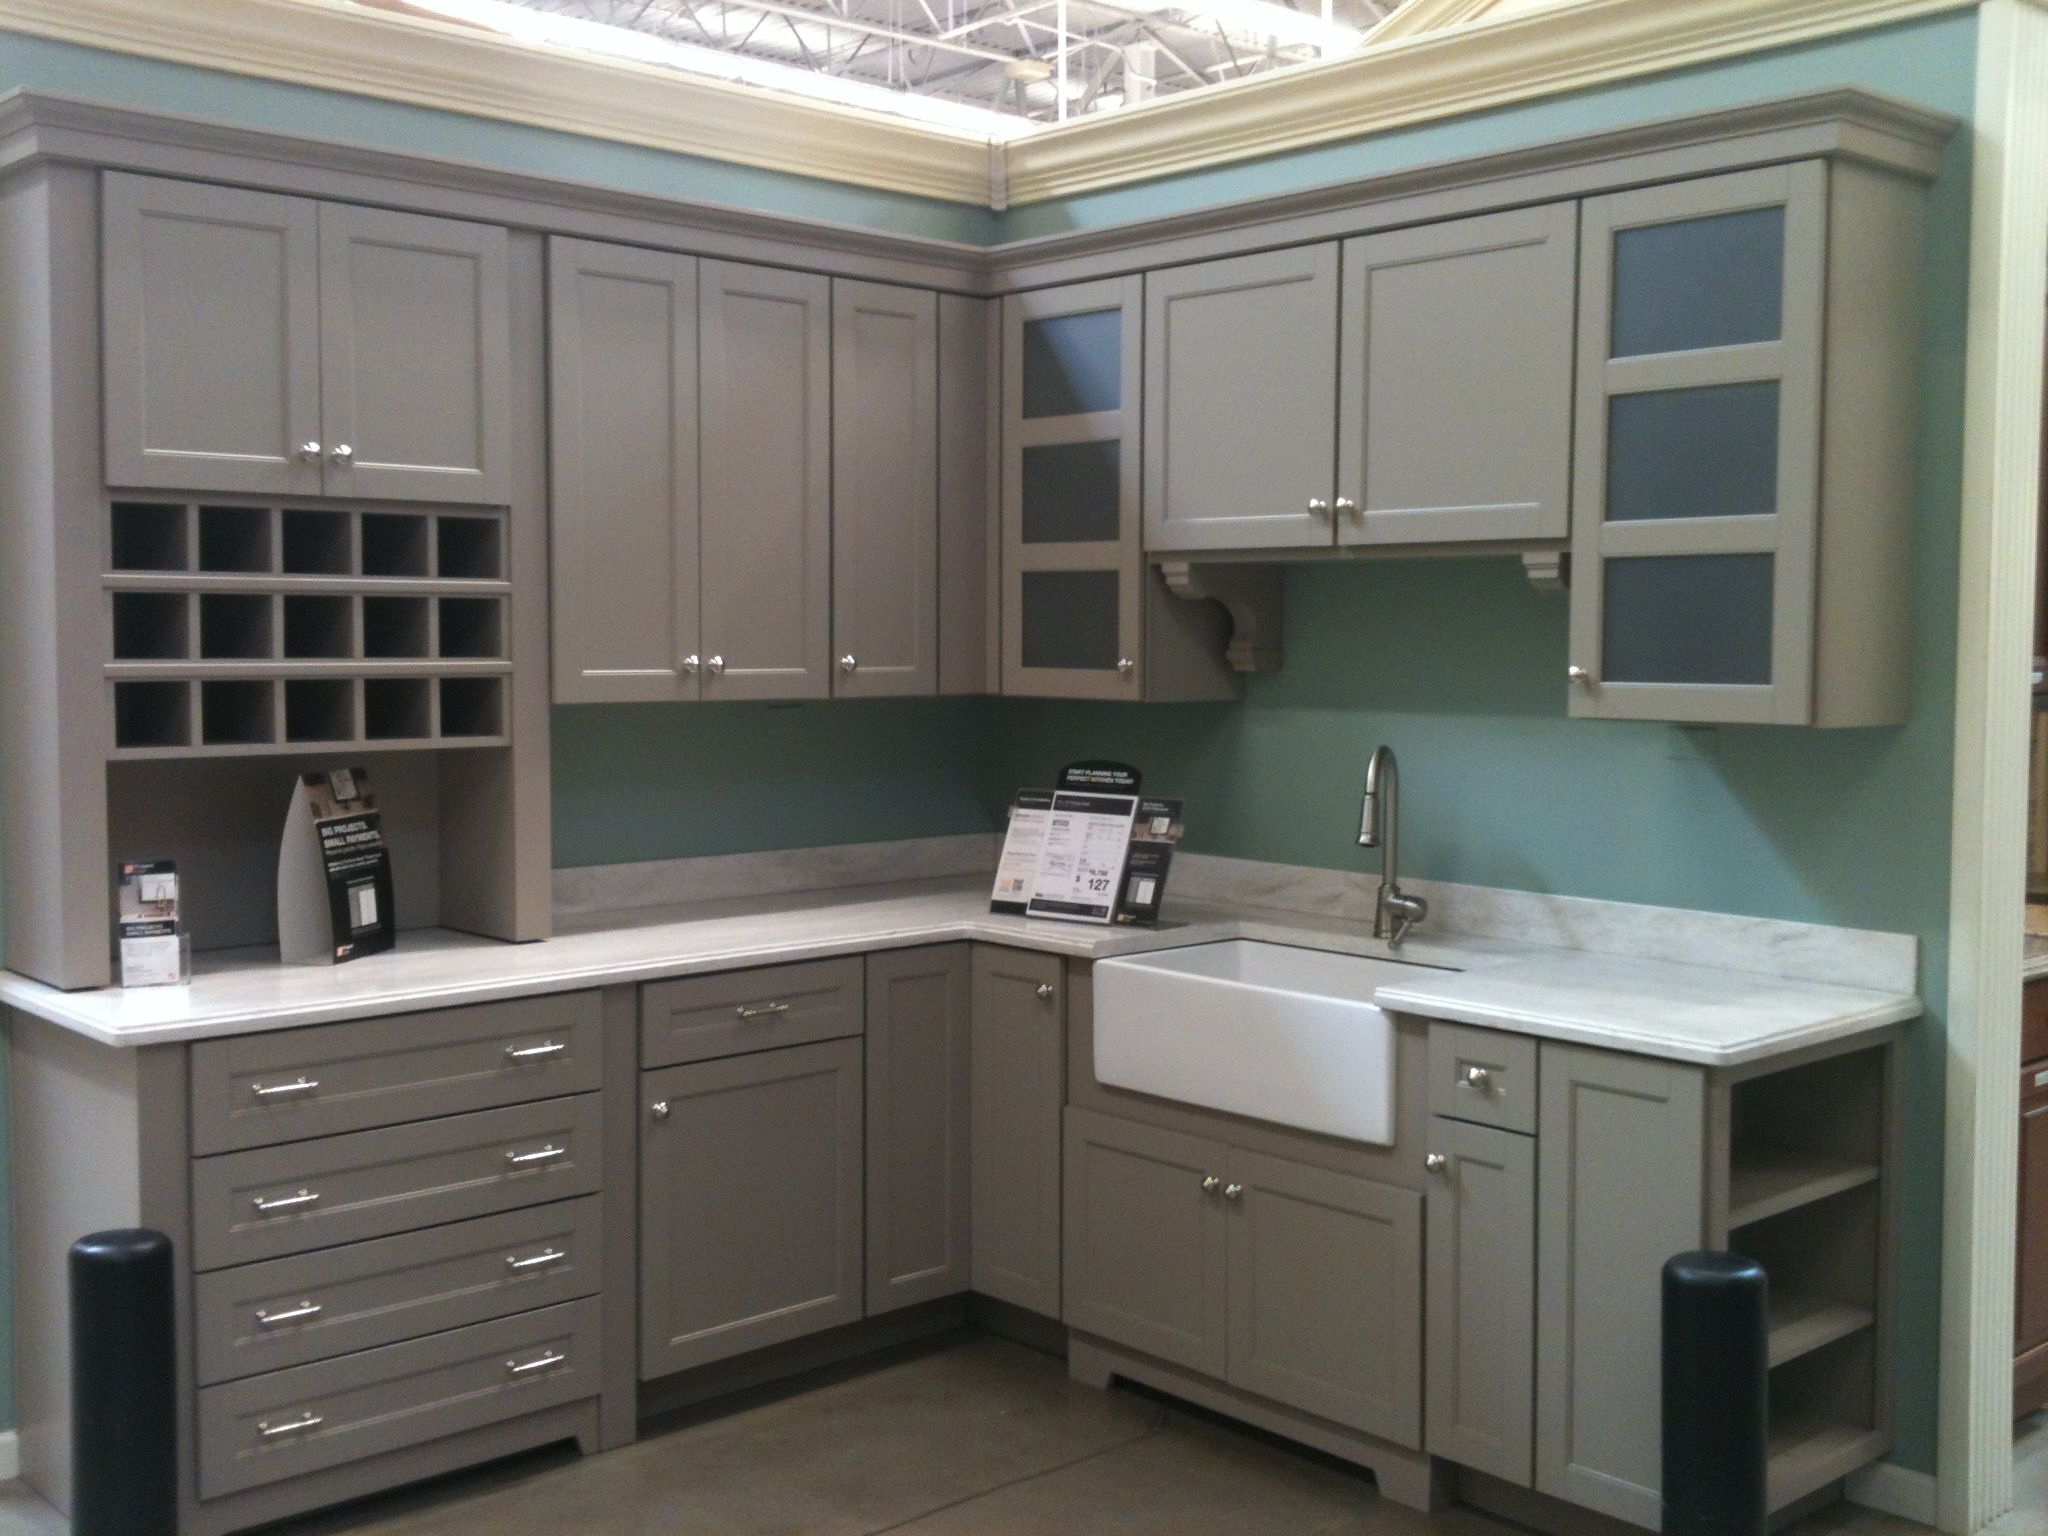 Martha Cabinets From Home Depot Like The Shelves On End